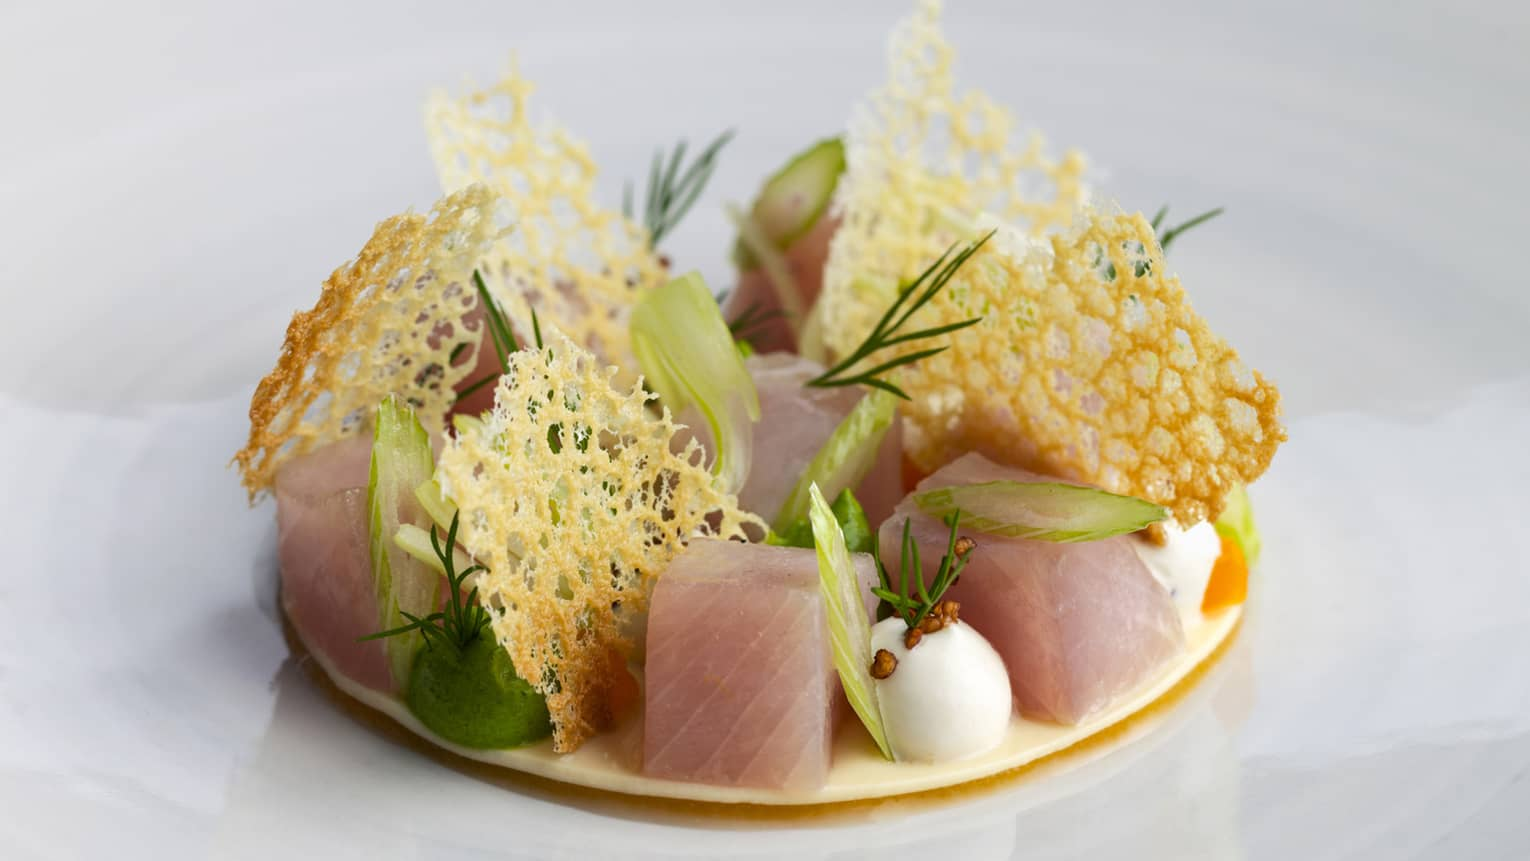 Sashimi cubes and garnishes on round plate